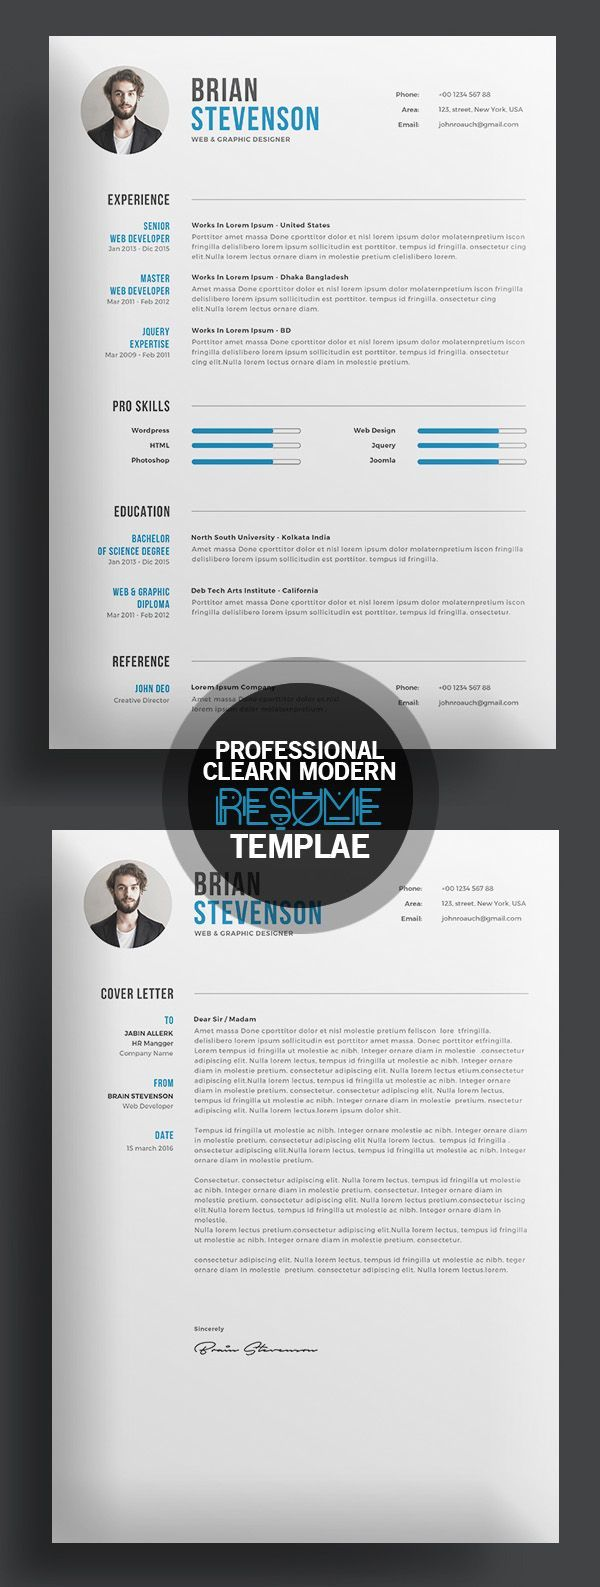 Creative Clearn Professional Resume Template | cv | Pinterest ...